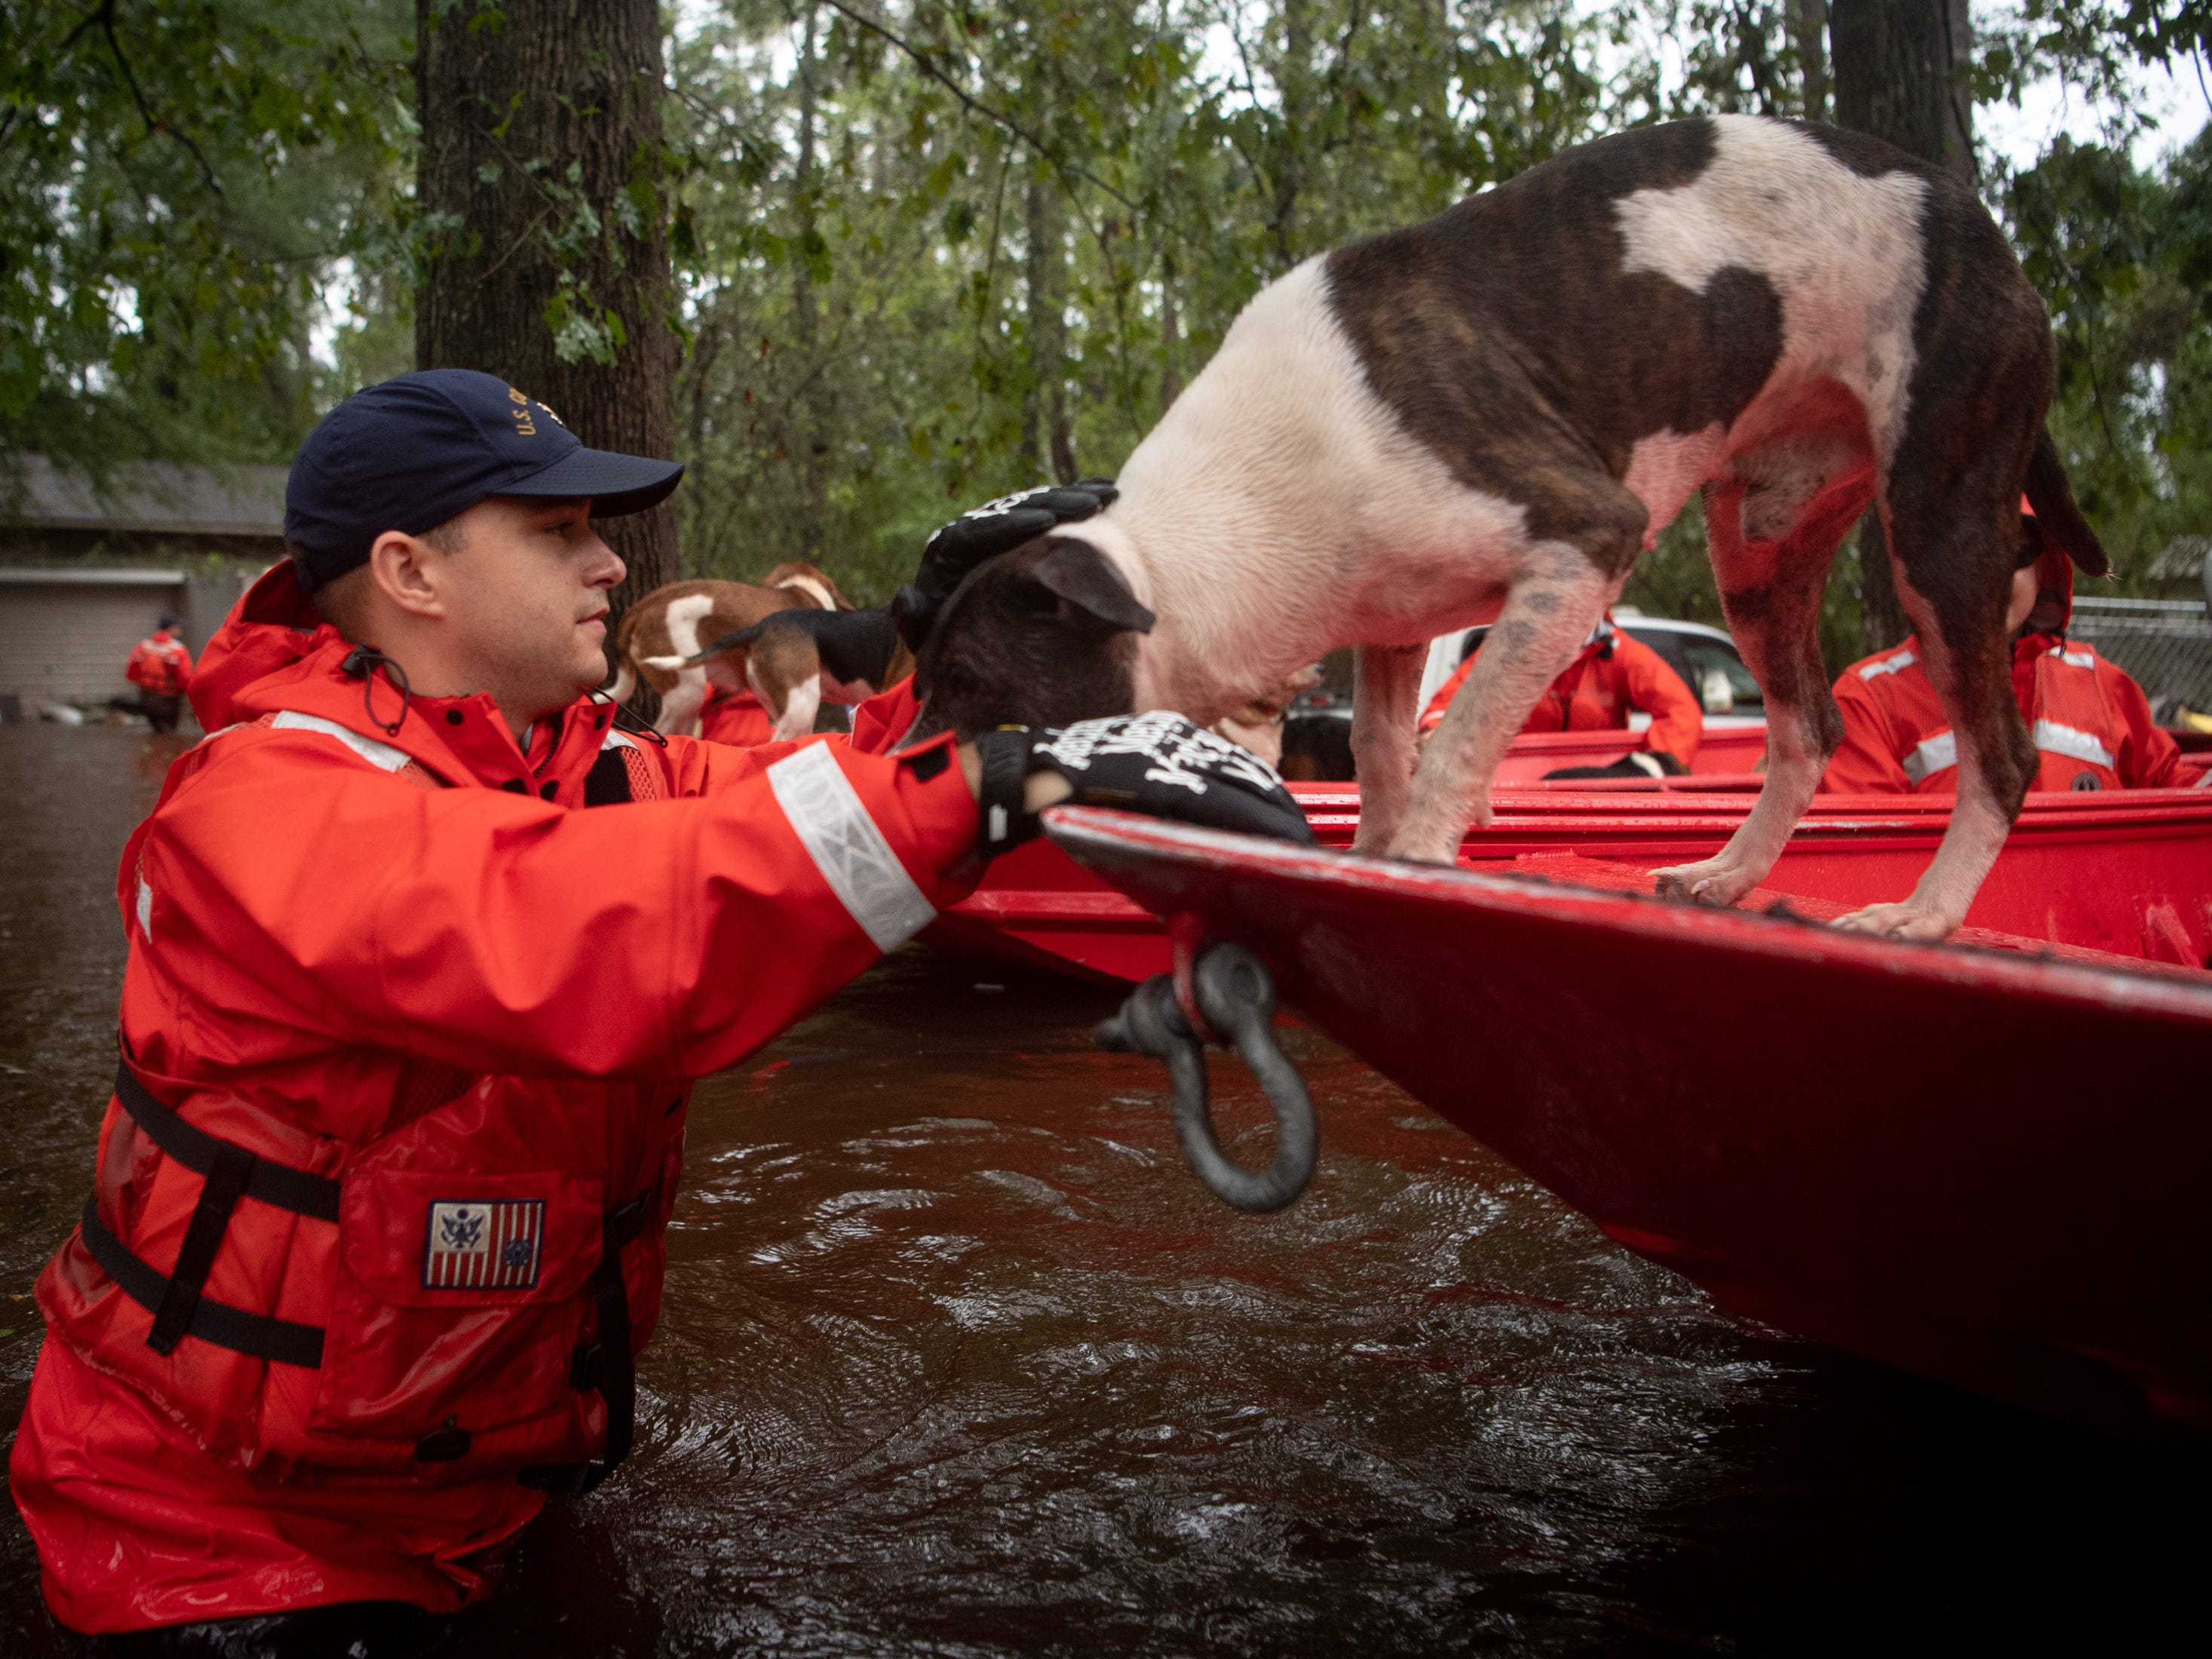 Coast Guard SN Javier Carrasquillo, of Louisville, Ky., helps rescue one of 14 dogs from a flooded home in Columbus County, N.C., Sunday, Sept. 16, 2018.